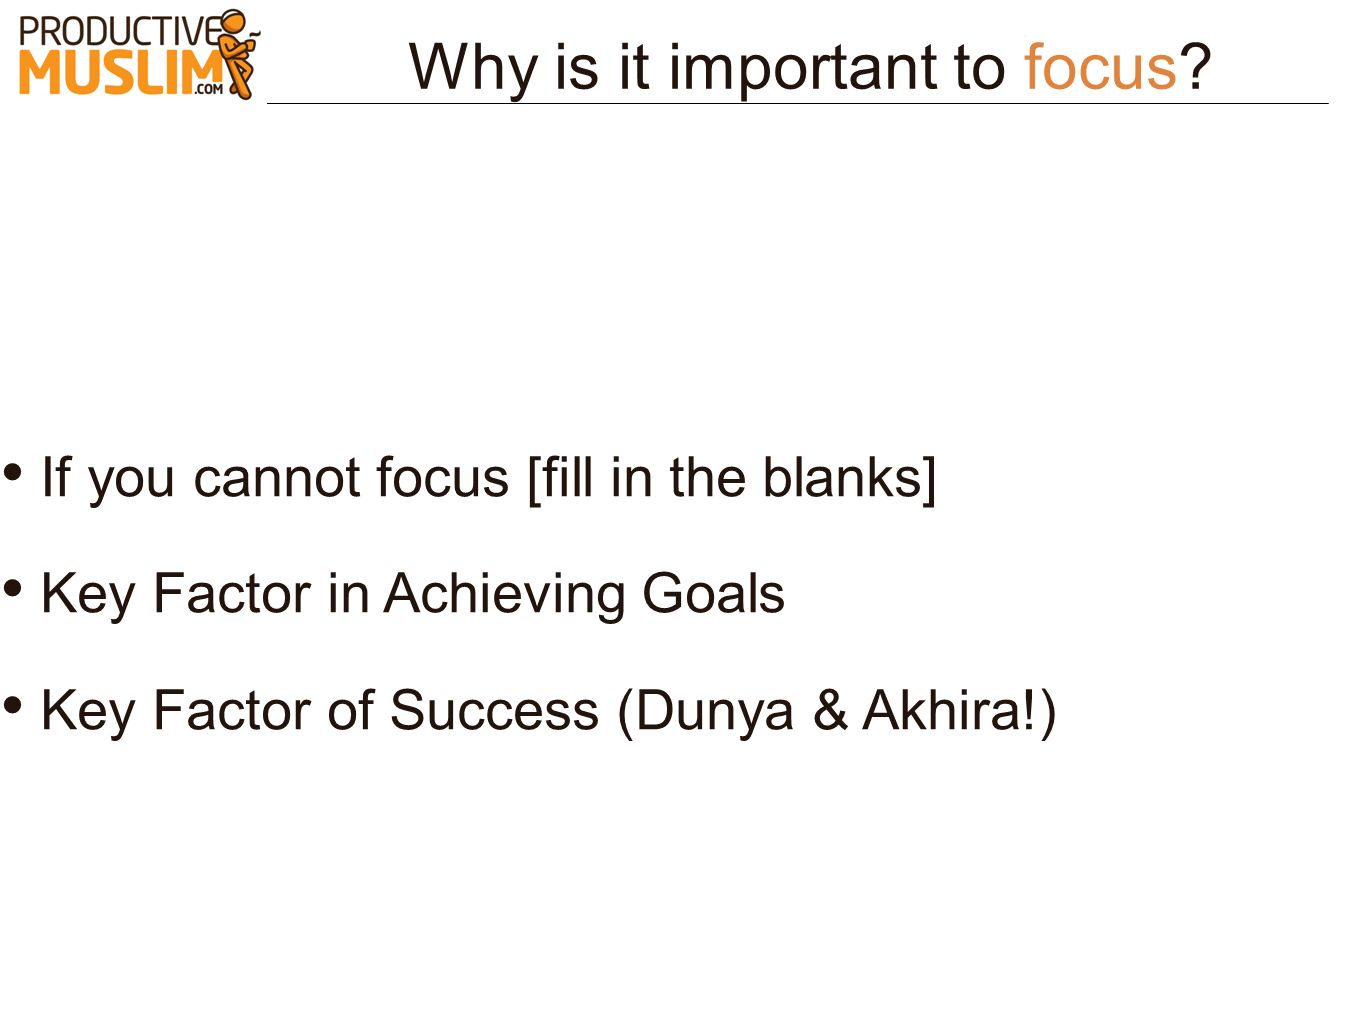 Why is it important to focus